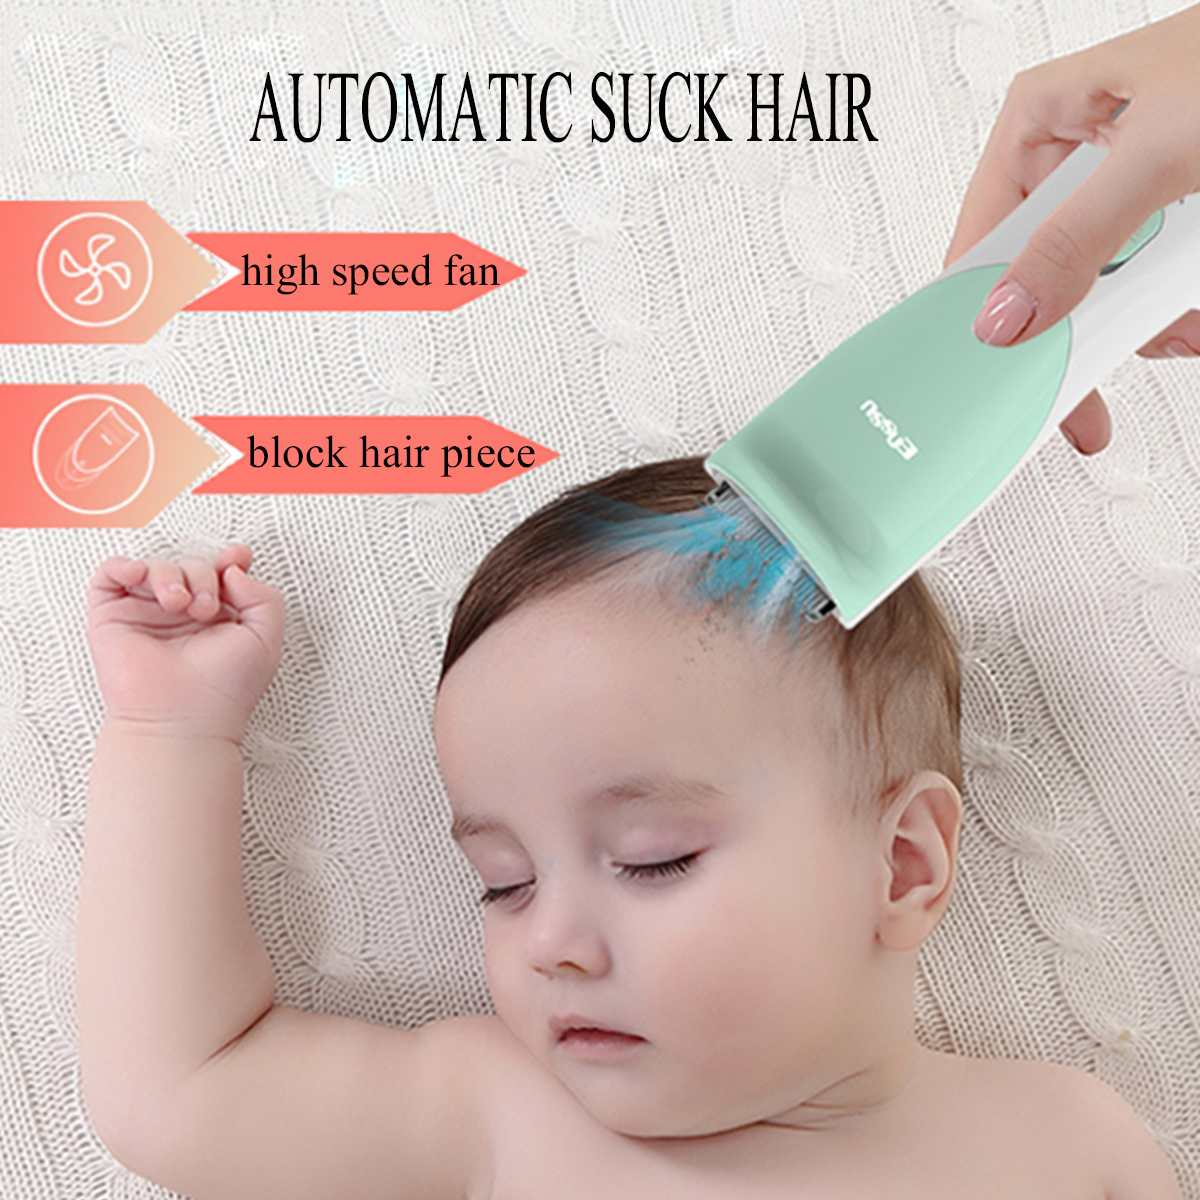 Silent Kids Hair Trimmers Mayyou Baby Hair Clippers Chargeable Waterproof Professional Cordless Haircut for Babies Children Infant